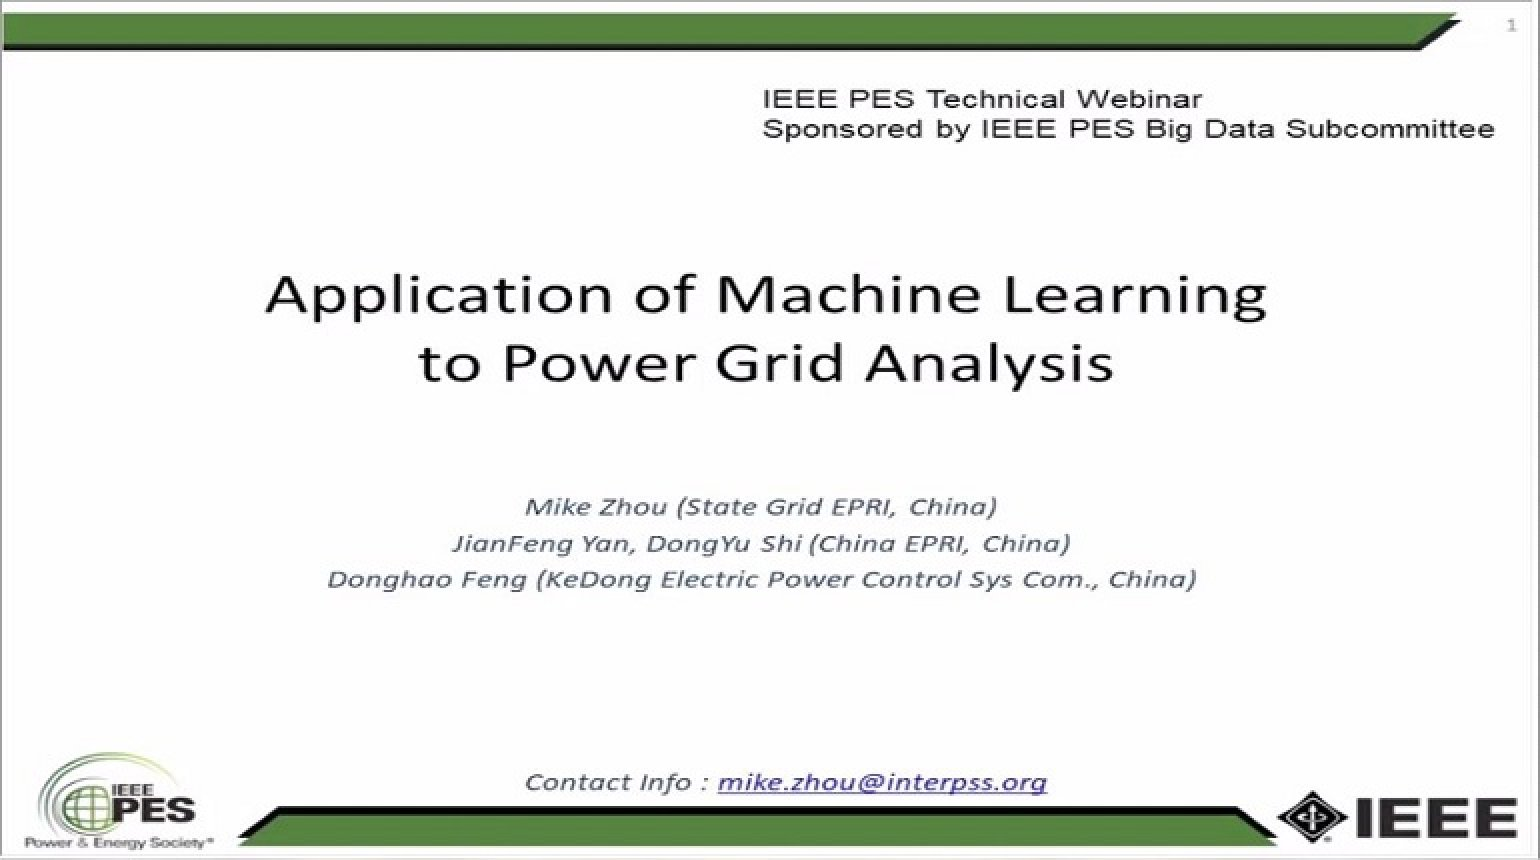 Deep Learning and its Application to Power System Analysis